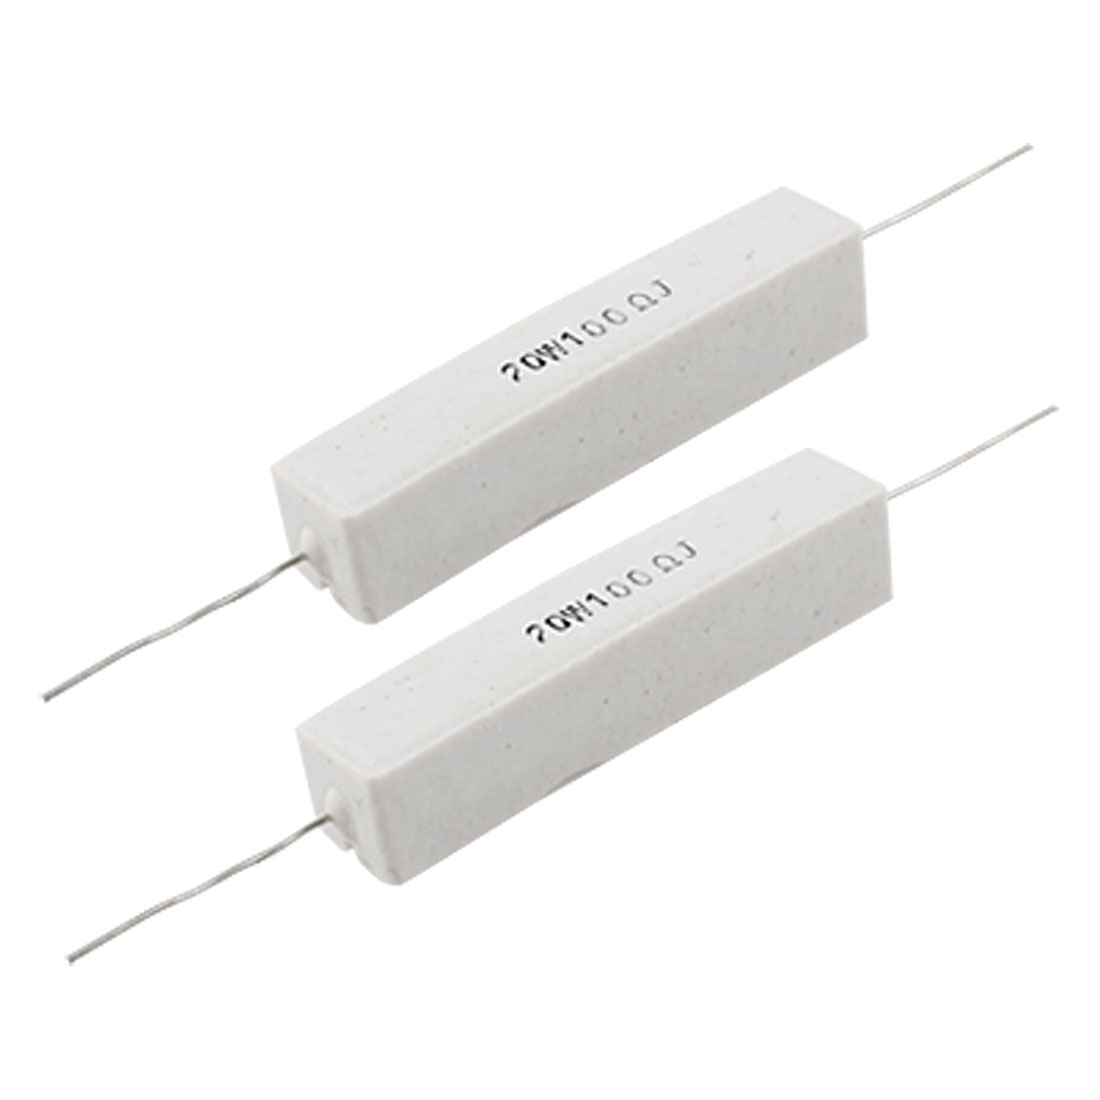 2 Pcs 5% 20W Watt 100 Ohm Wirewound Cement Power Resistors